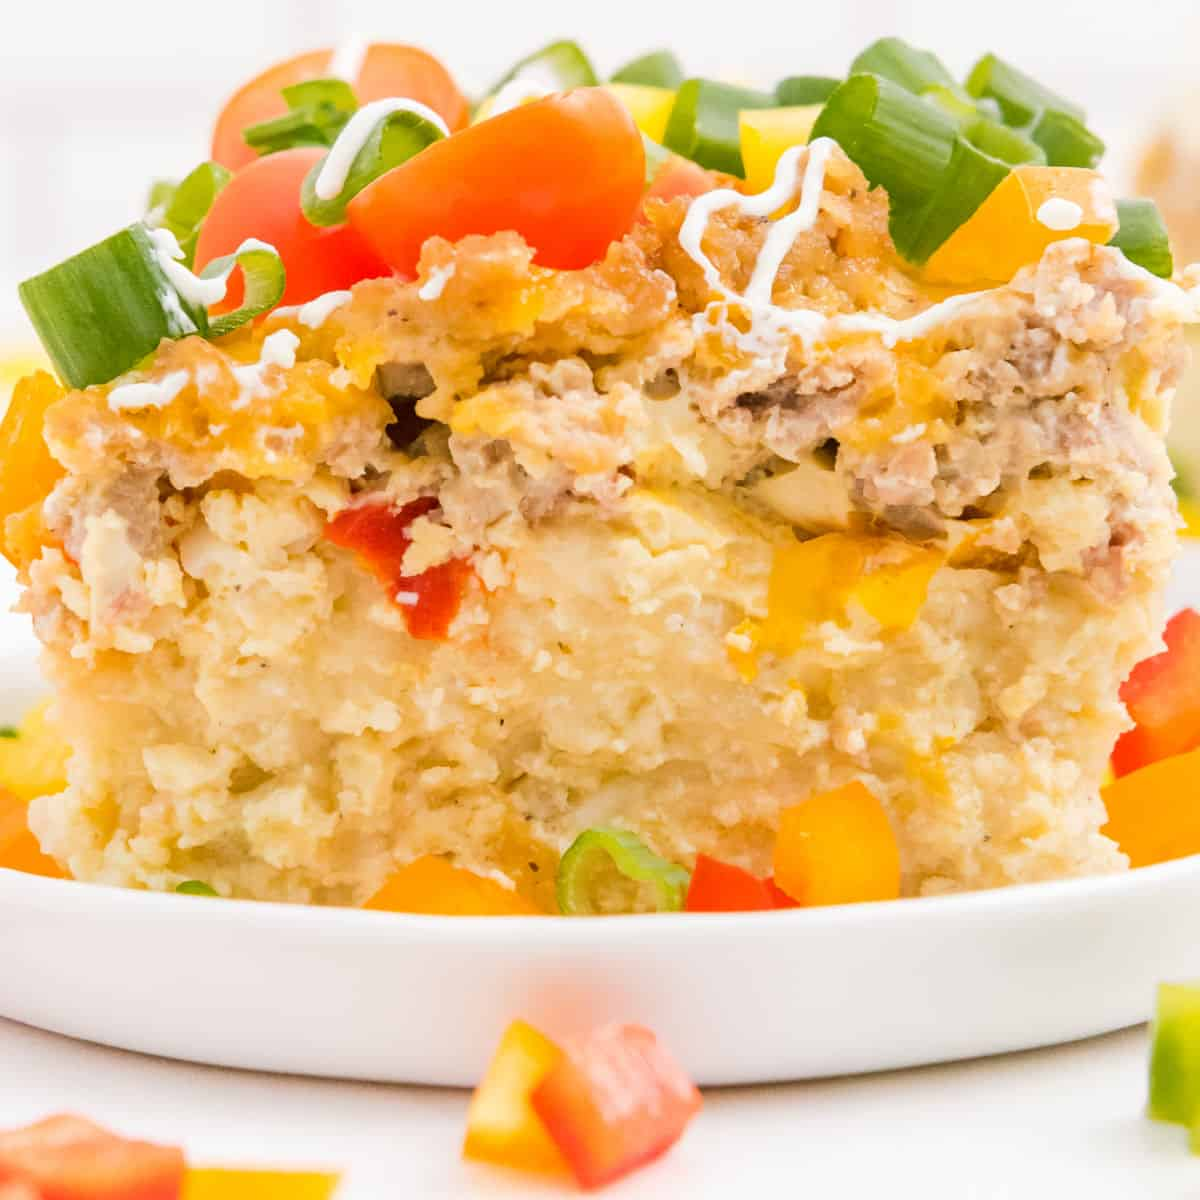 square image of overnight crock pot breakfast casserole on a plate topped with tomatoes and green onion